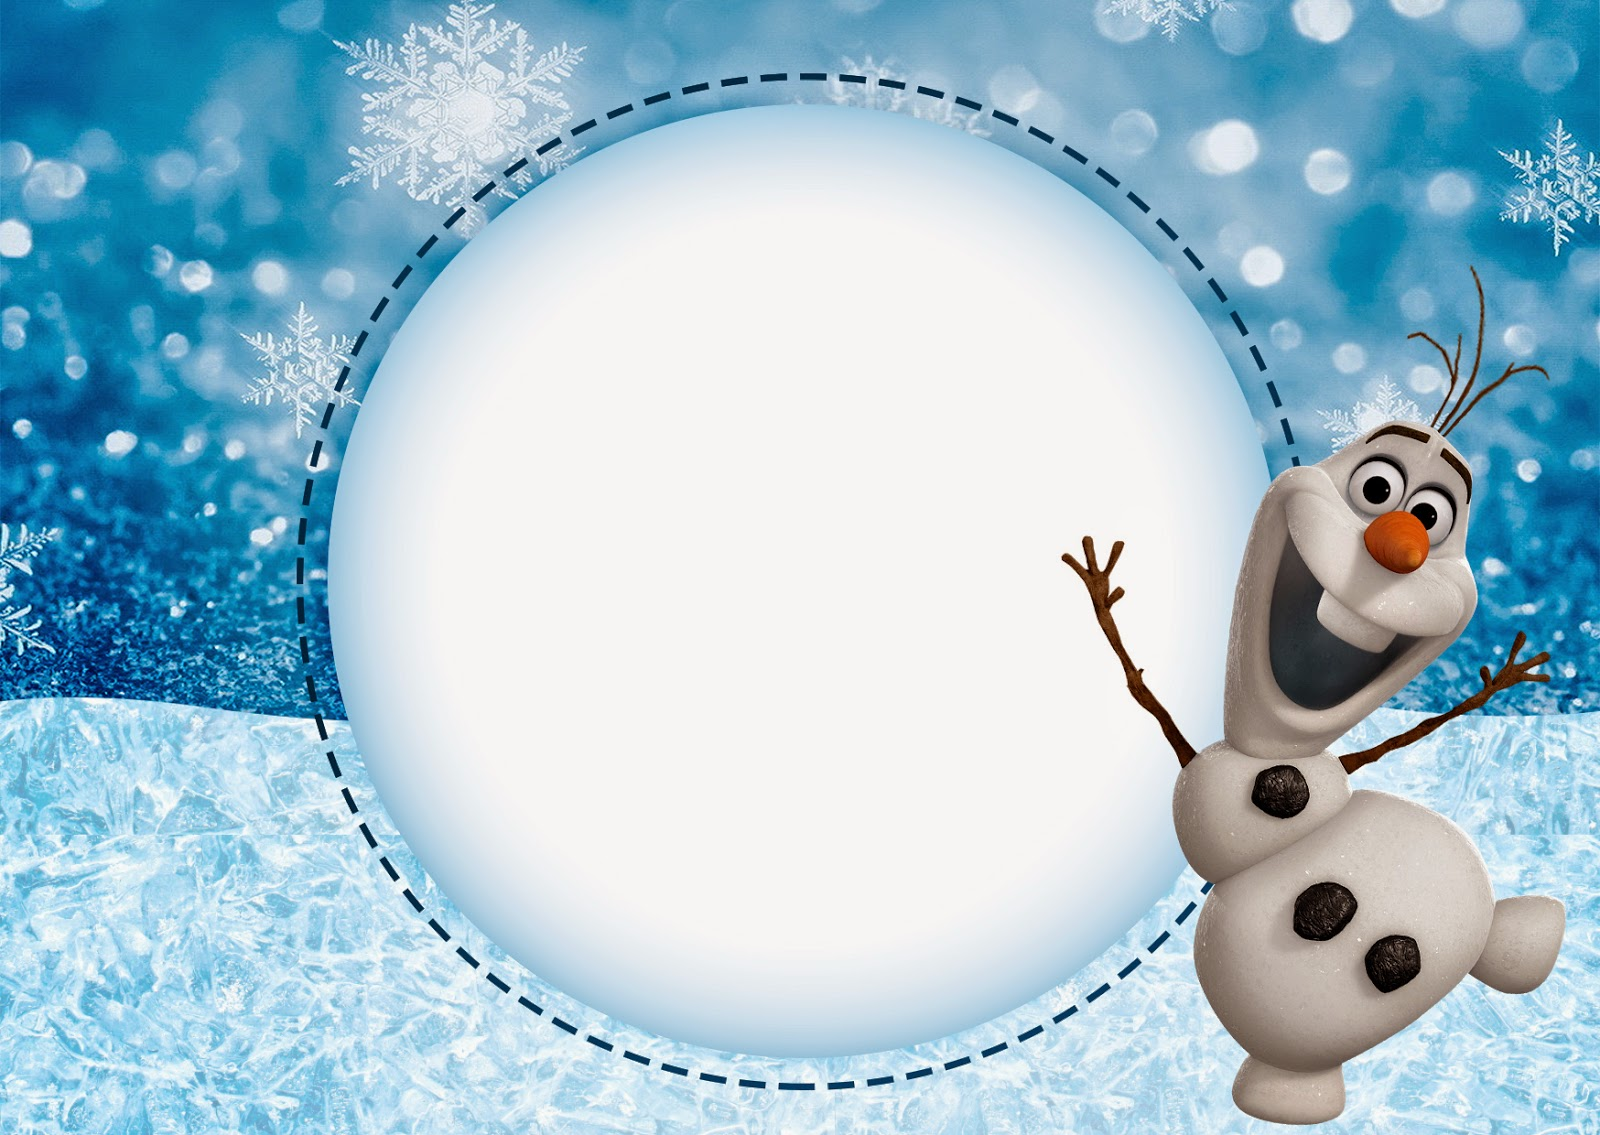 Olaf Free Printable Invitations Oh My Fiesta! in english